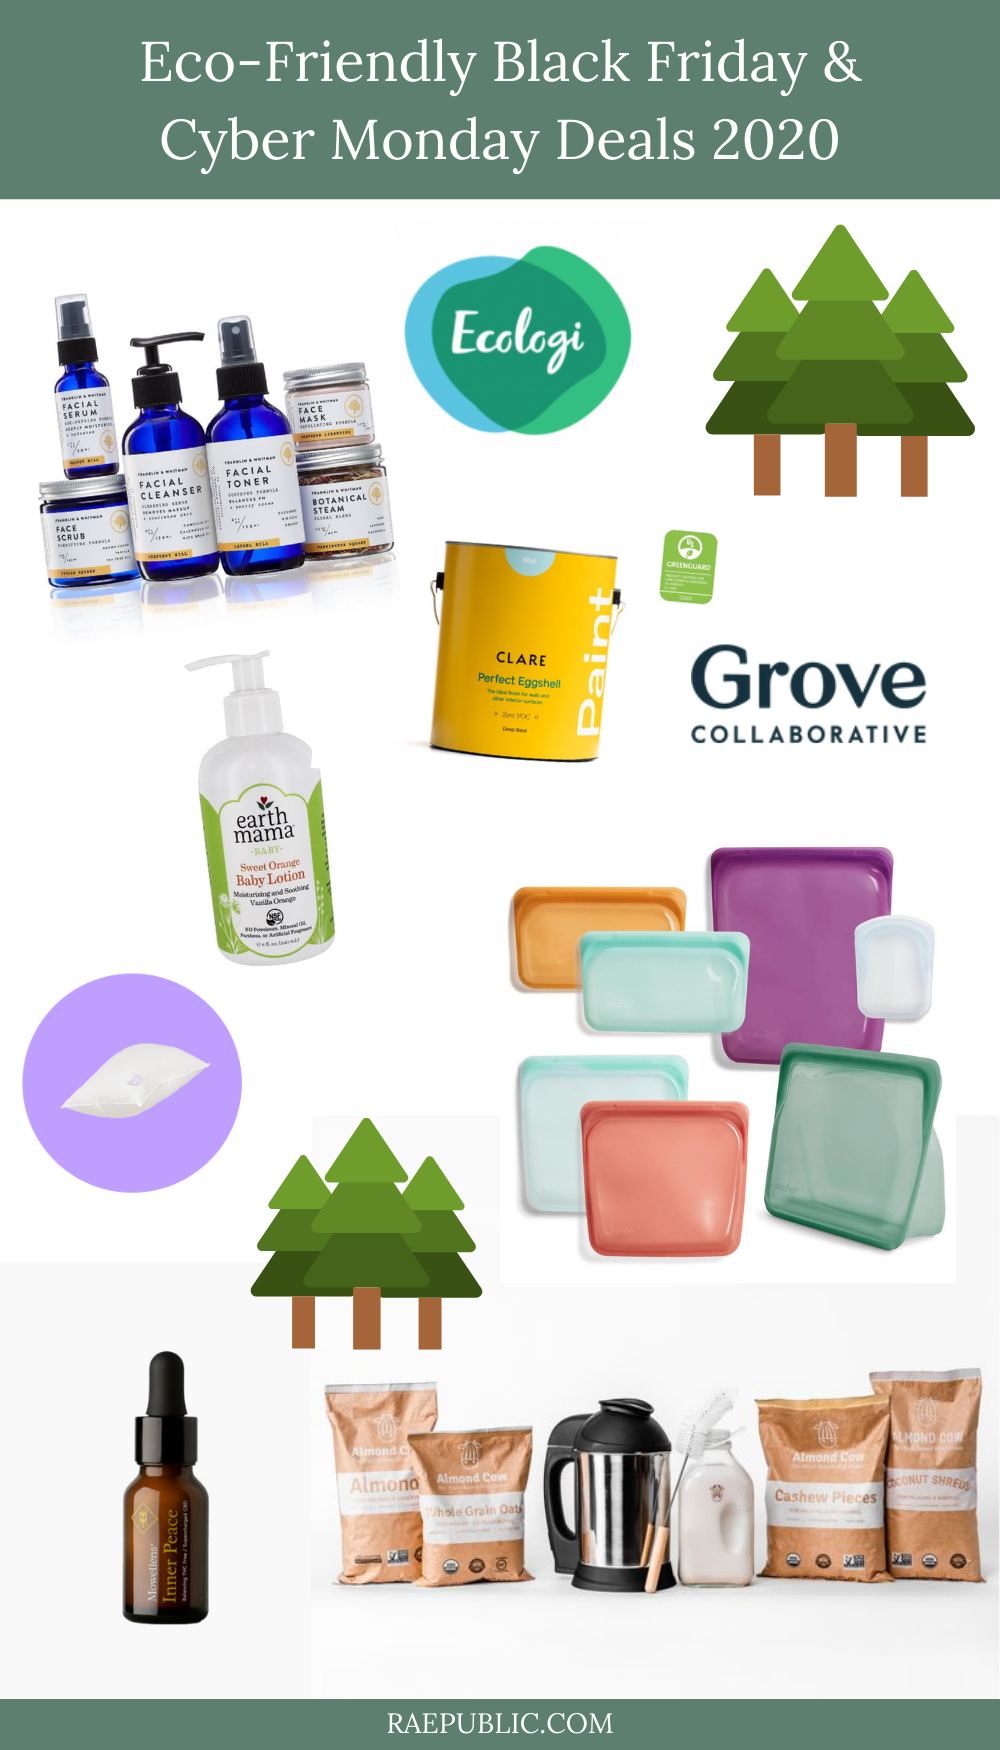 Raepublic's picks for Eco-Friendly Black Friday and Cyber Monday Deals 2020.png